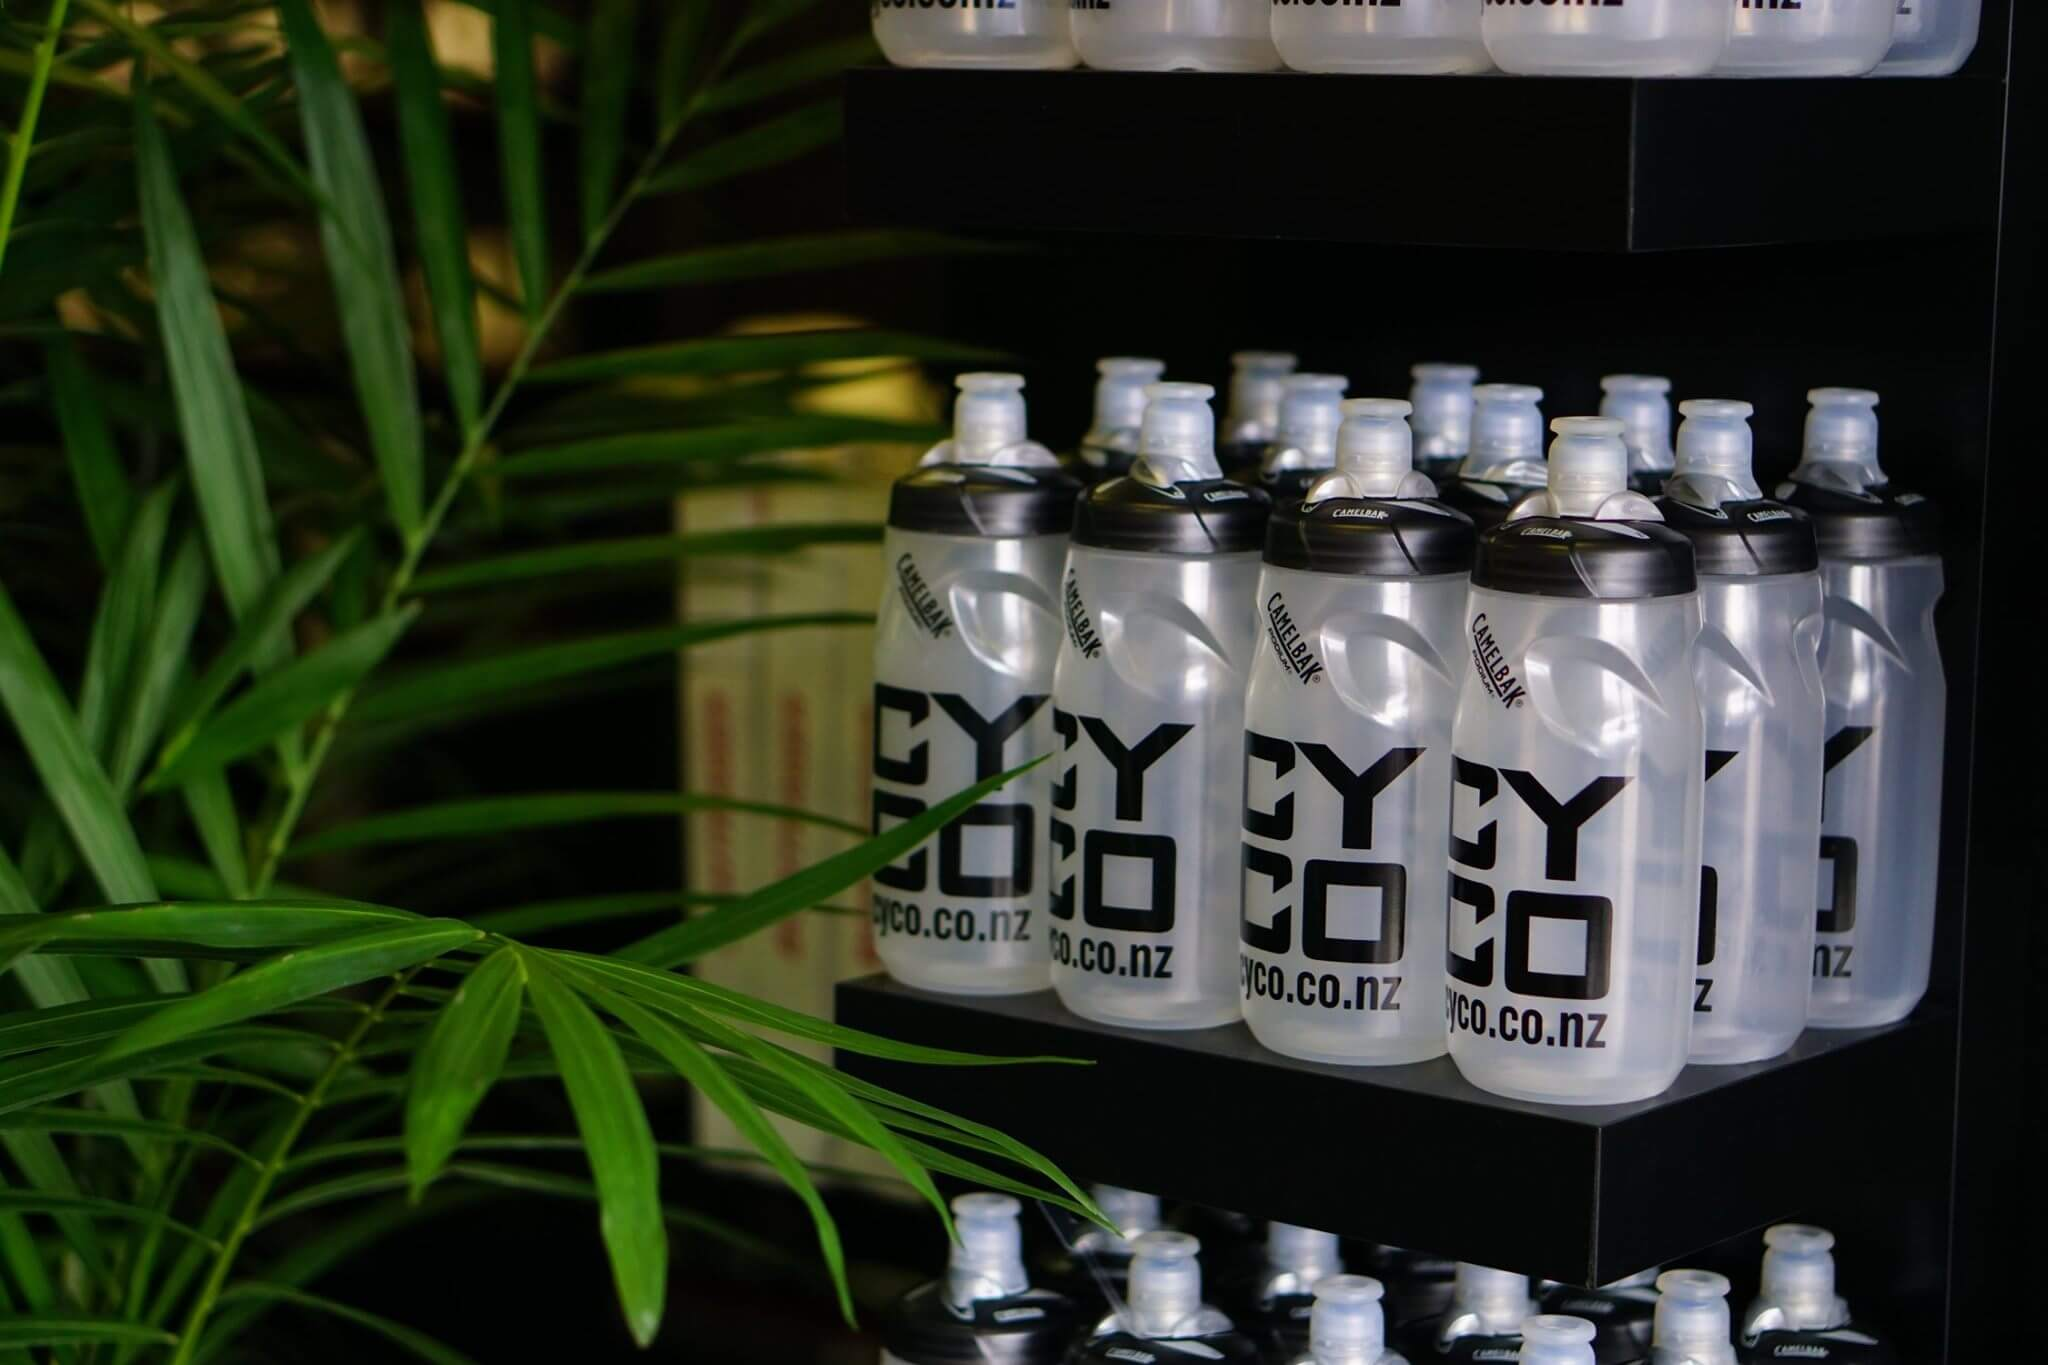 Cycling drink bottles branded CYCO